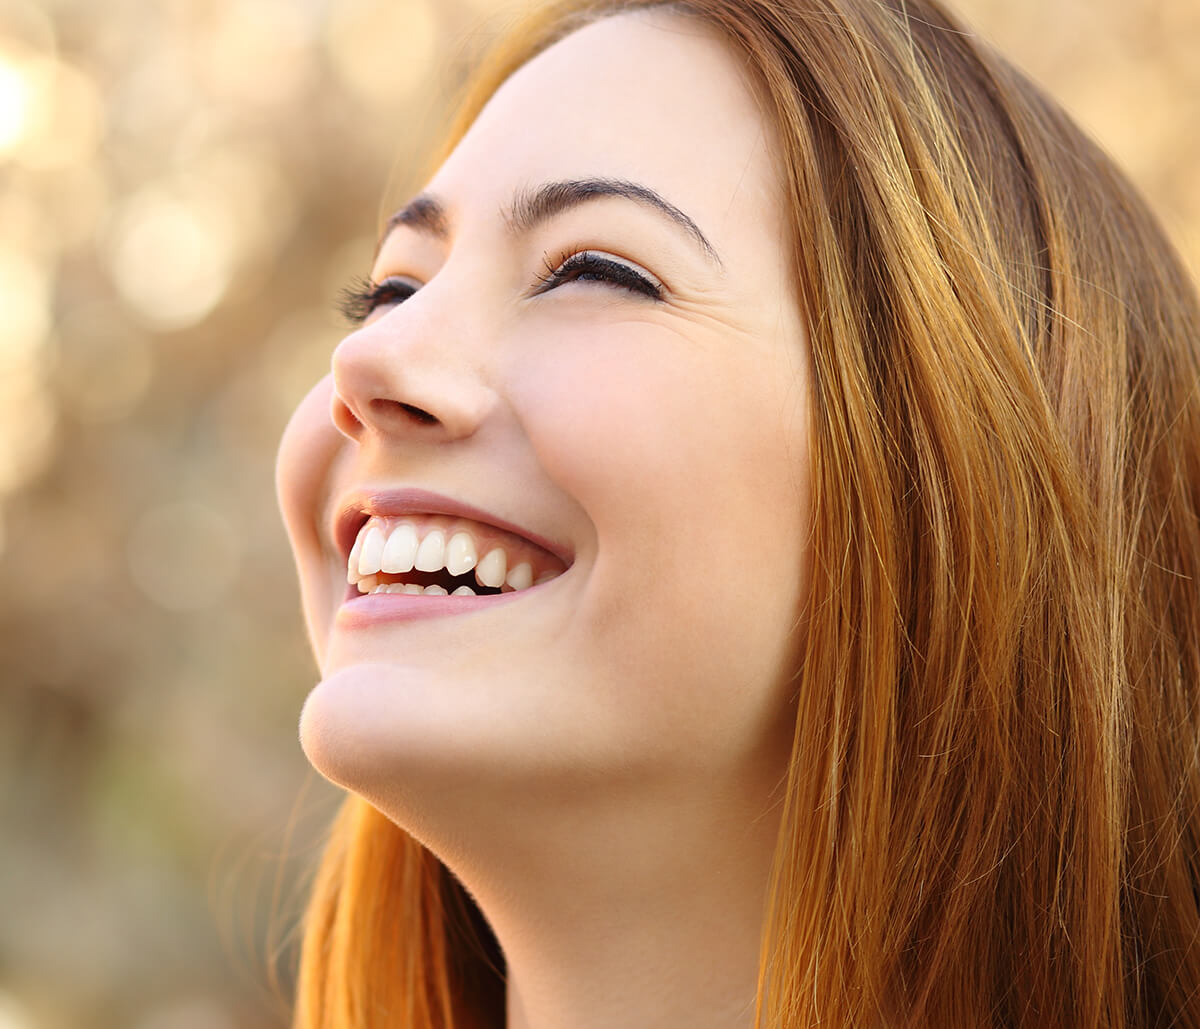 General Dentistry Consultation in Mississauga Area